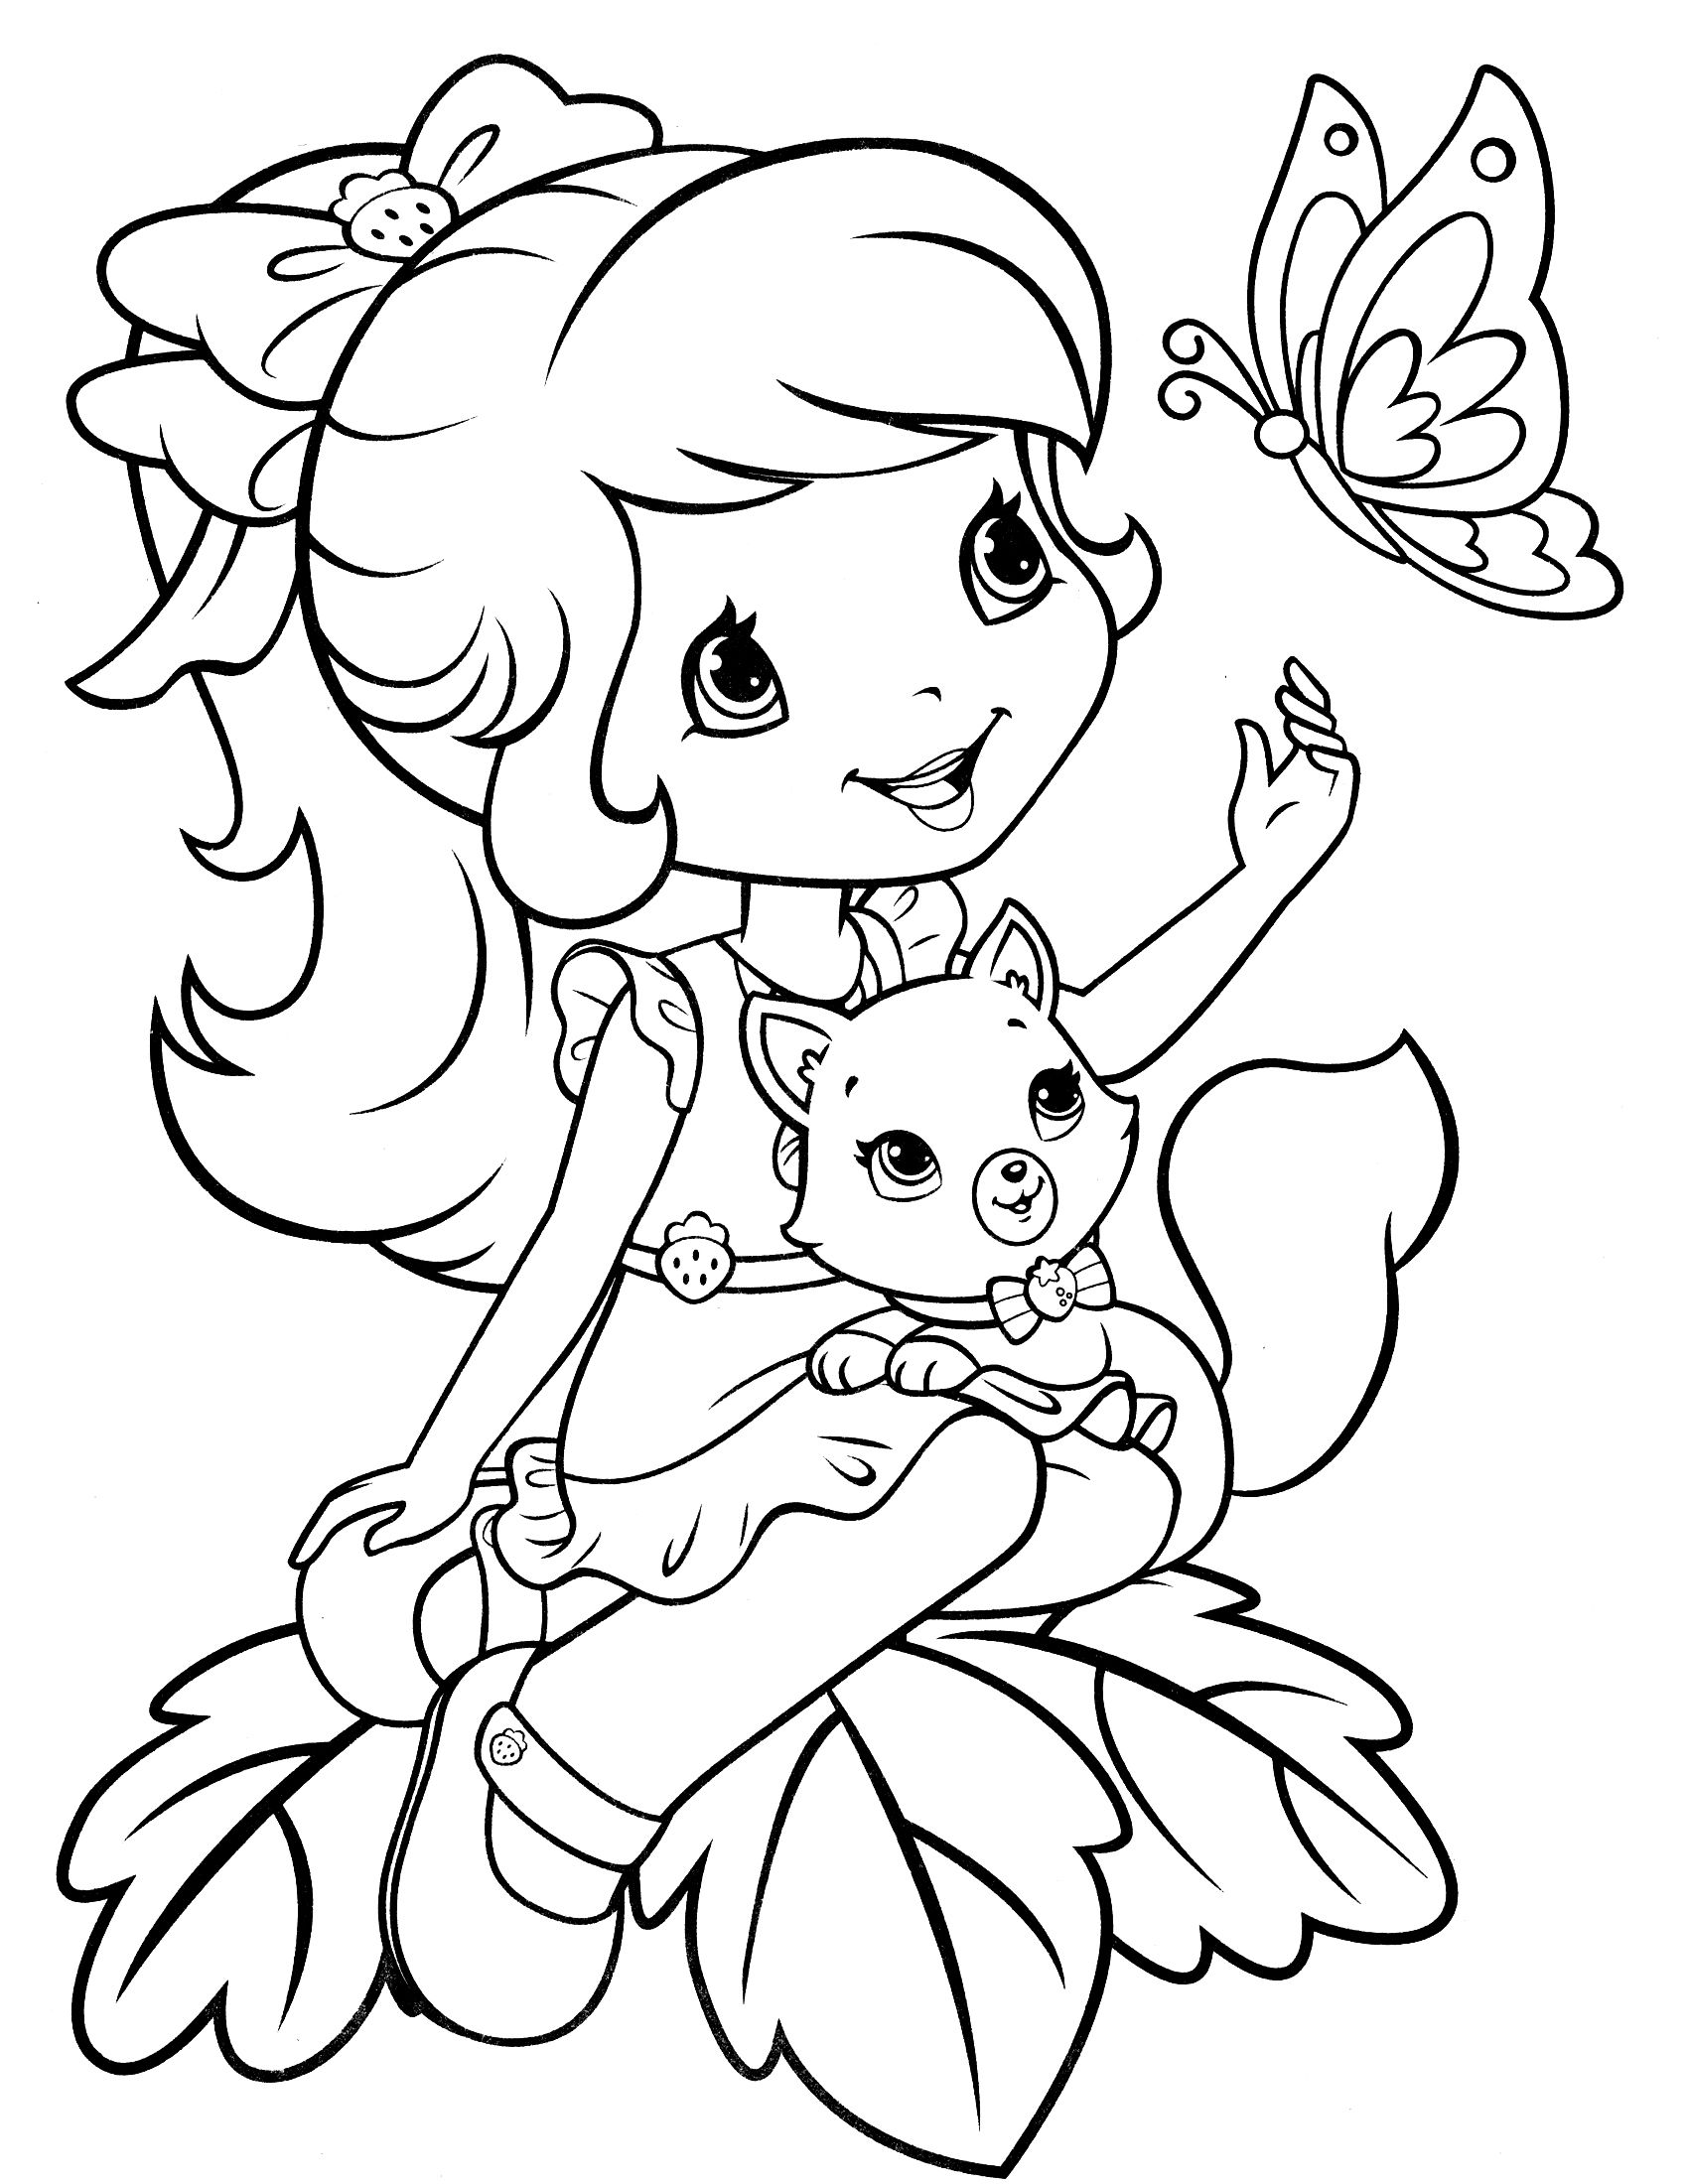 Strawberry Shortcake 52 Coloringcolor Com Butterfly Coloring Page Cartoon Coloring Pages Disney Coloring Pages